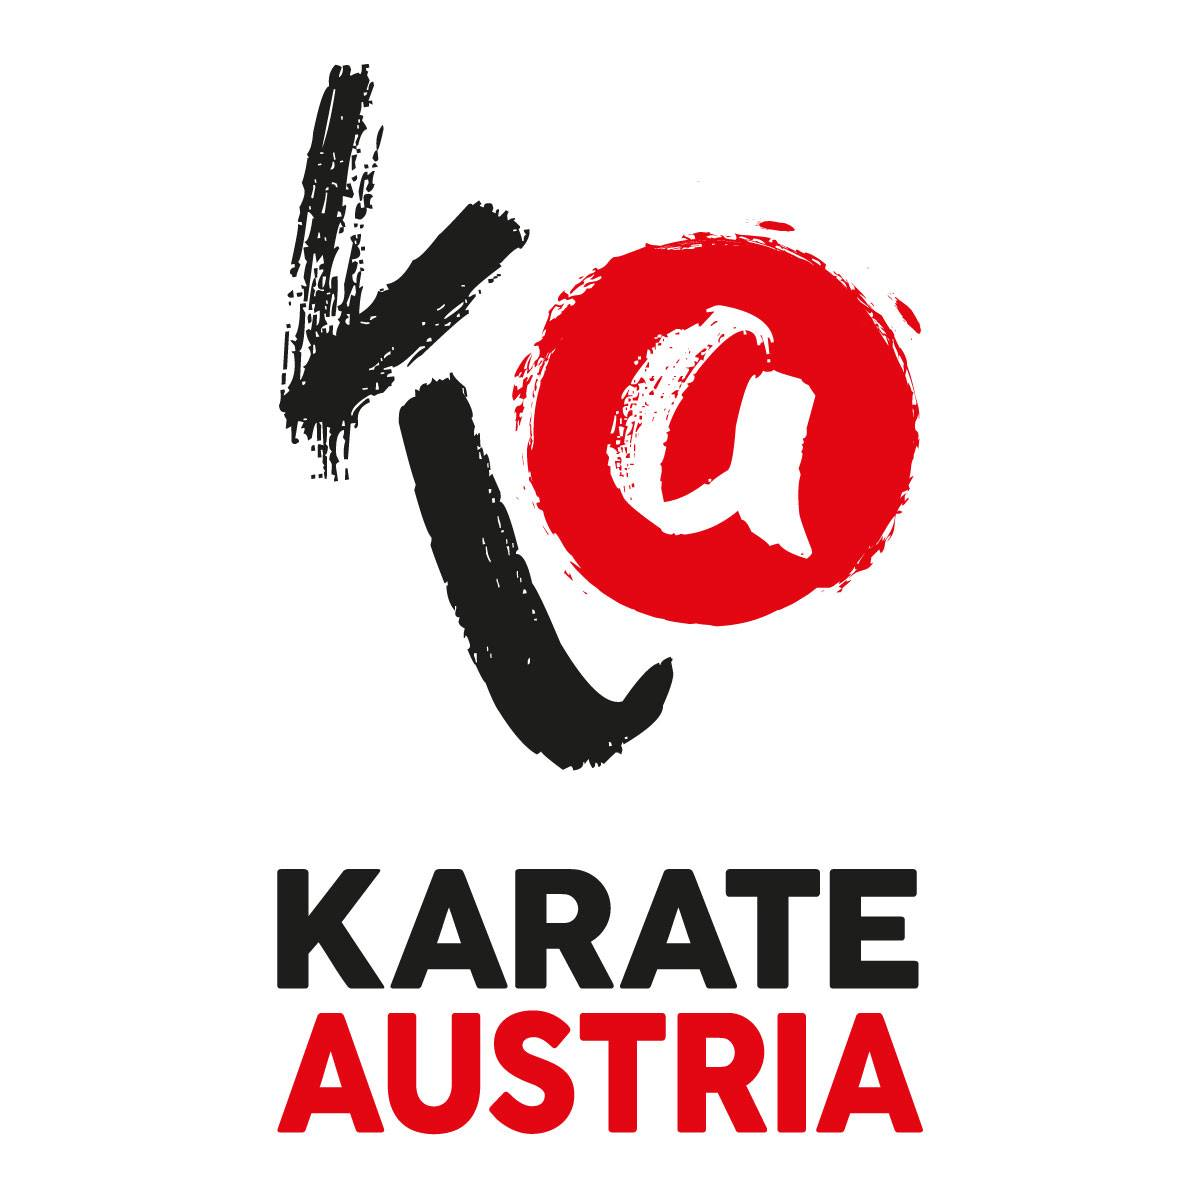 KARATE AUSTRIA Tag 2019